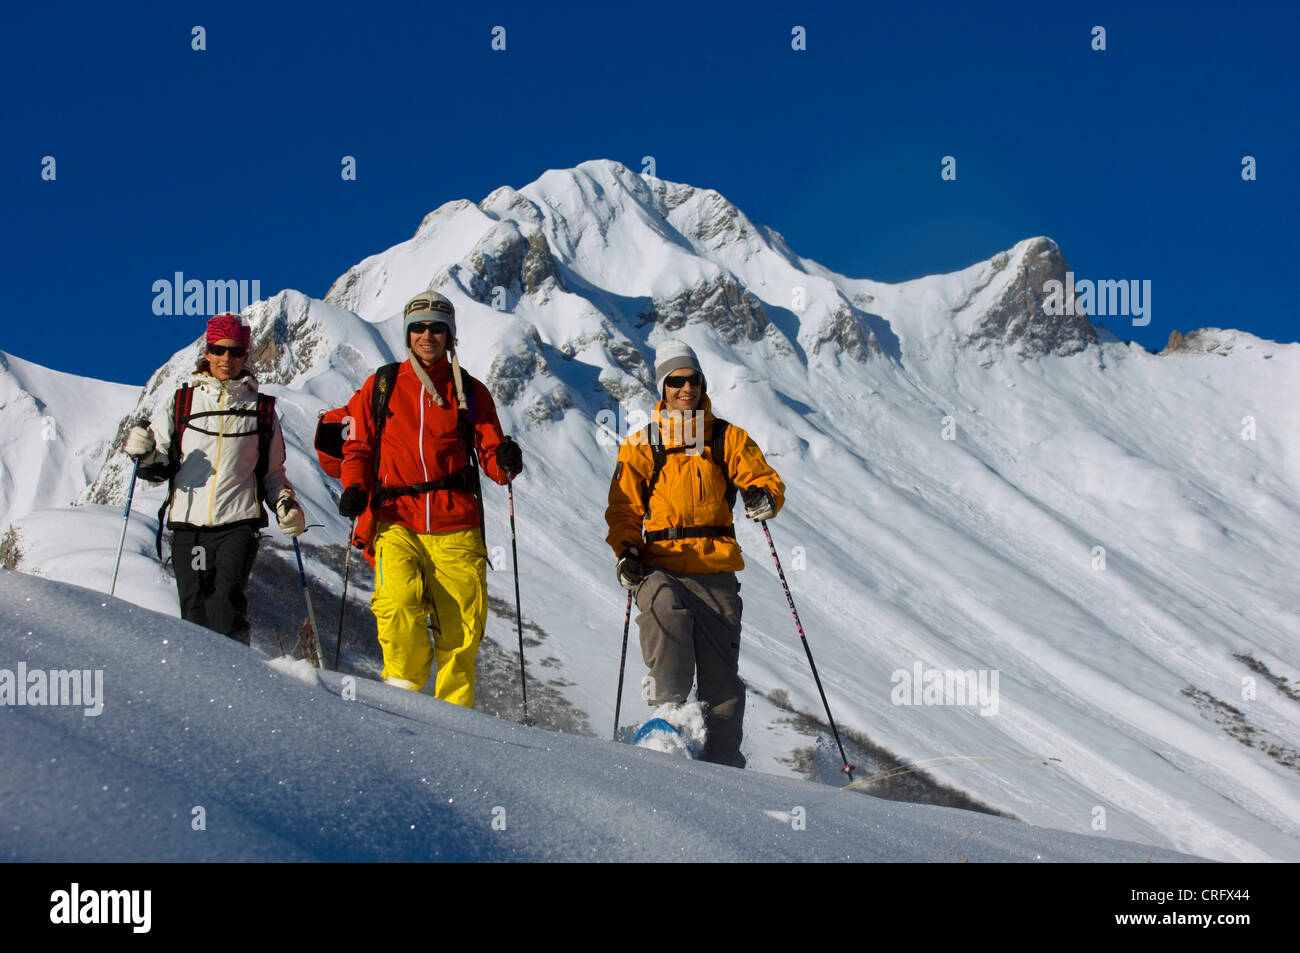 three persons on snow shoes, walking in deep powder snow in the North of Alps near Les Menuires ski resort, France, Stock Photo